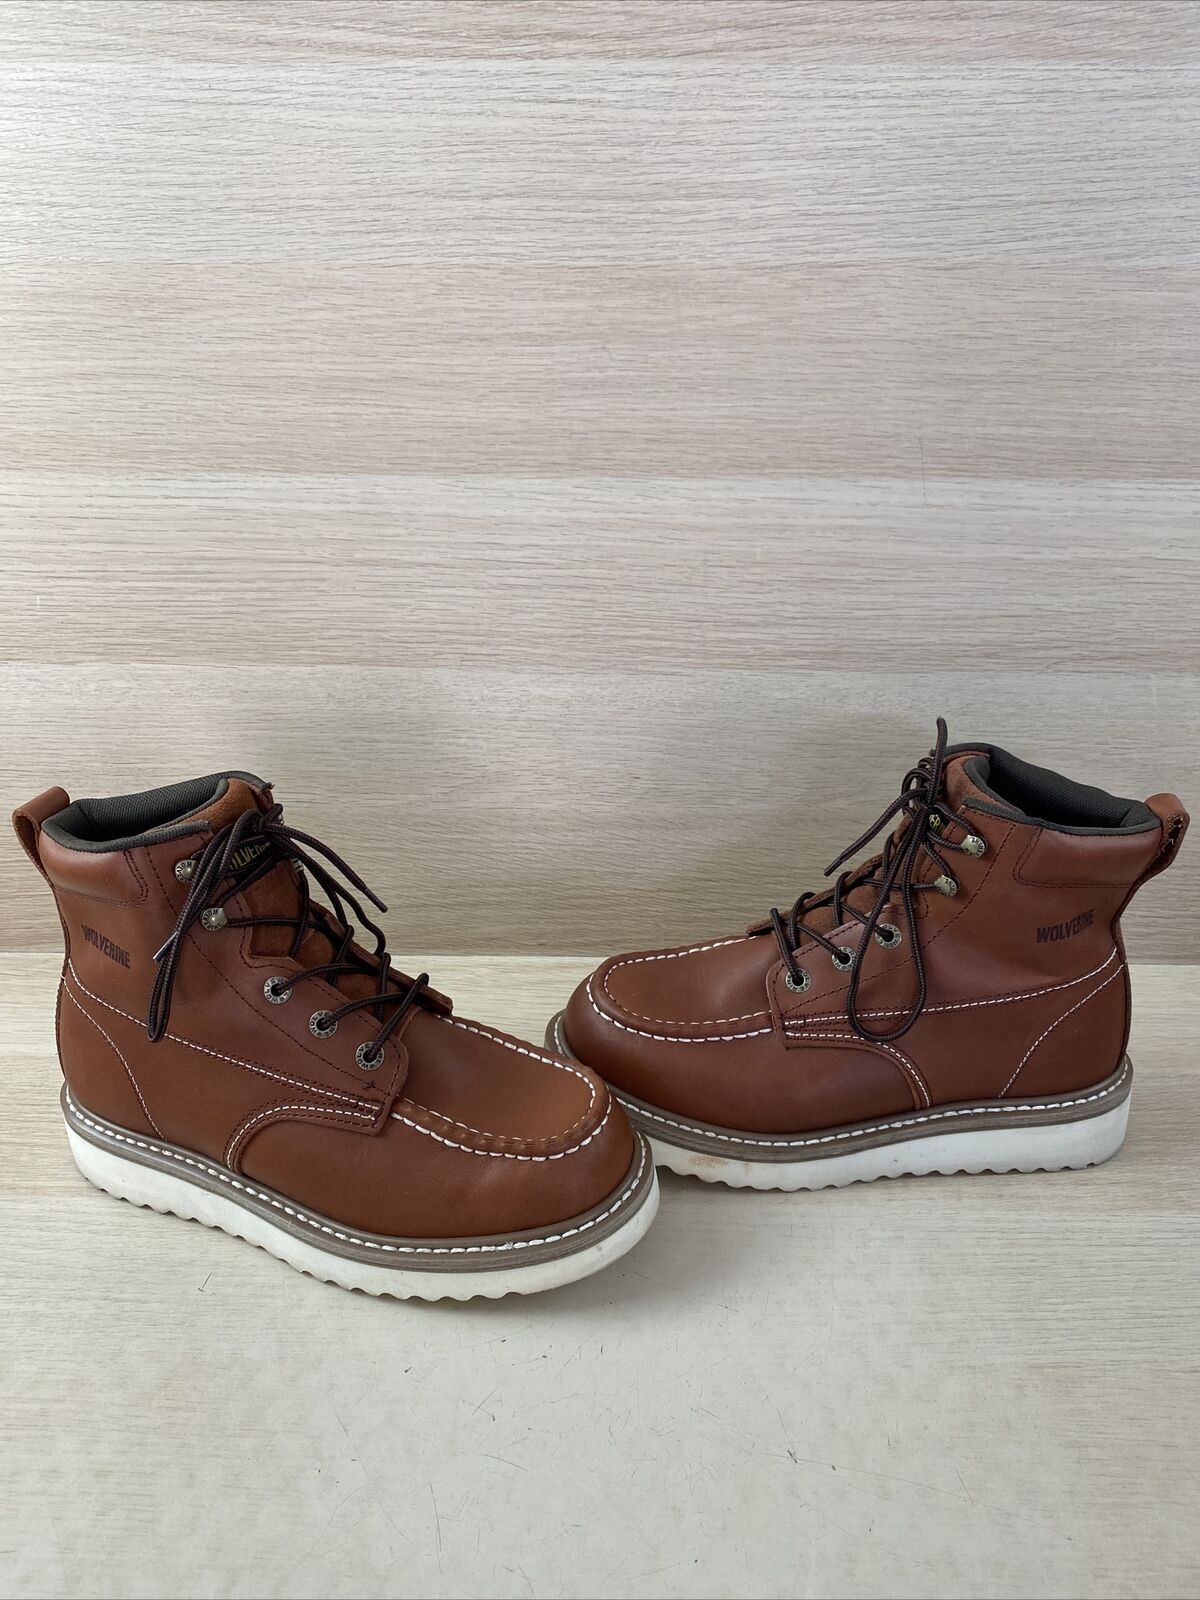 WOLVERINE Brown Leather Lace Up Moc Toe Work Boots Men's Size 8.5 W